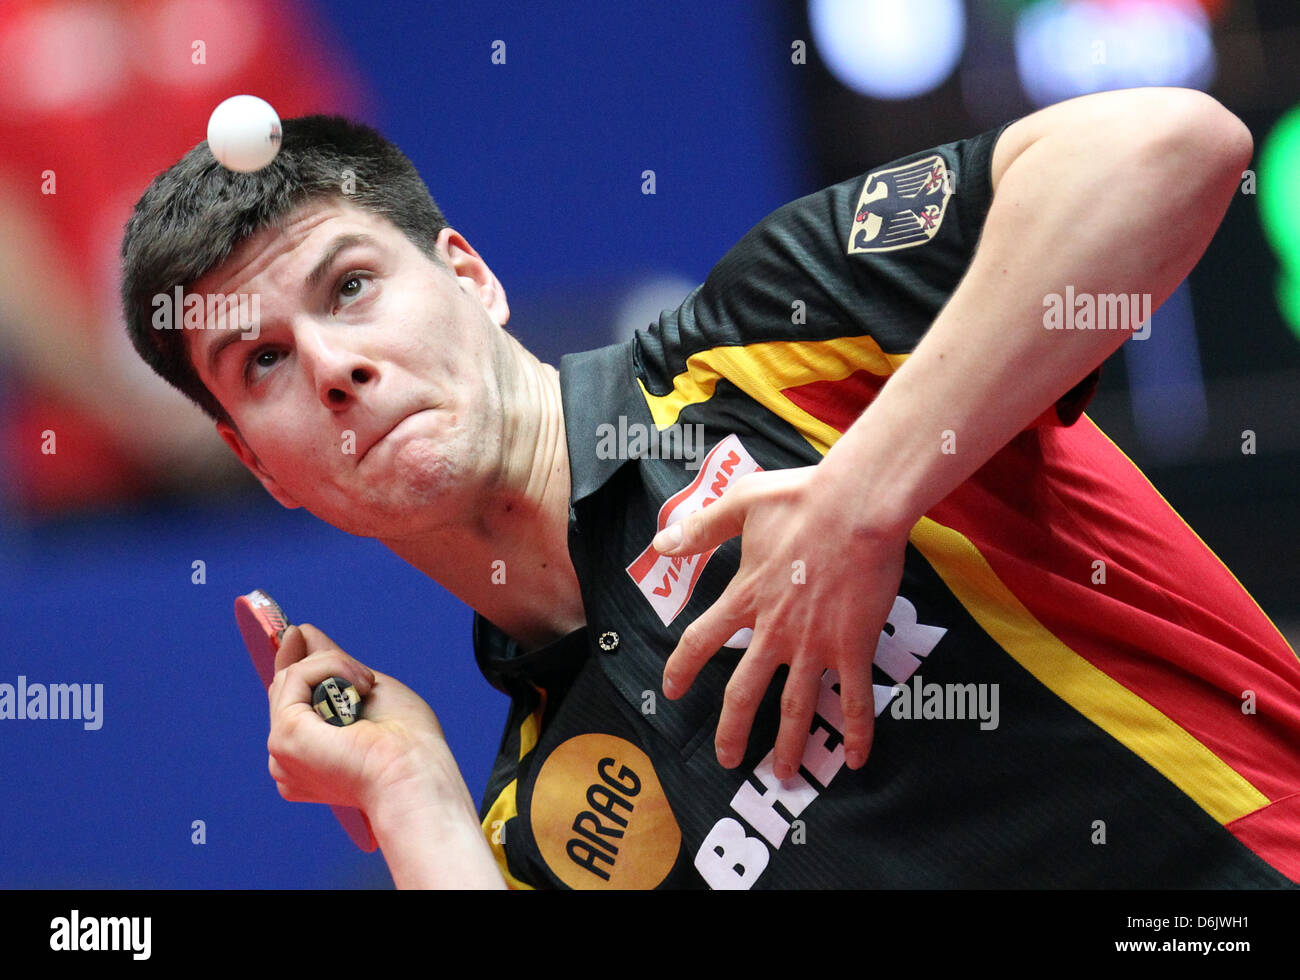 Germany's Dimitrij Ovtcharov hits the ball during the men's group B match against Freitas from Portugal - Stock Image